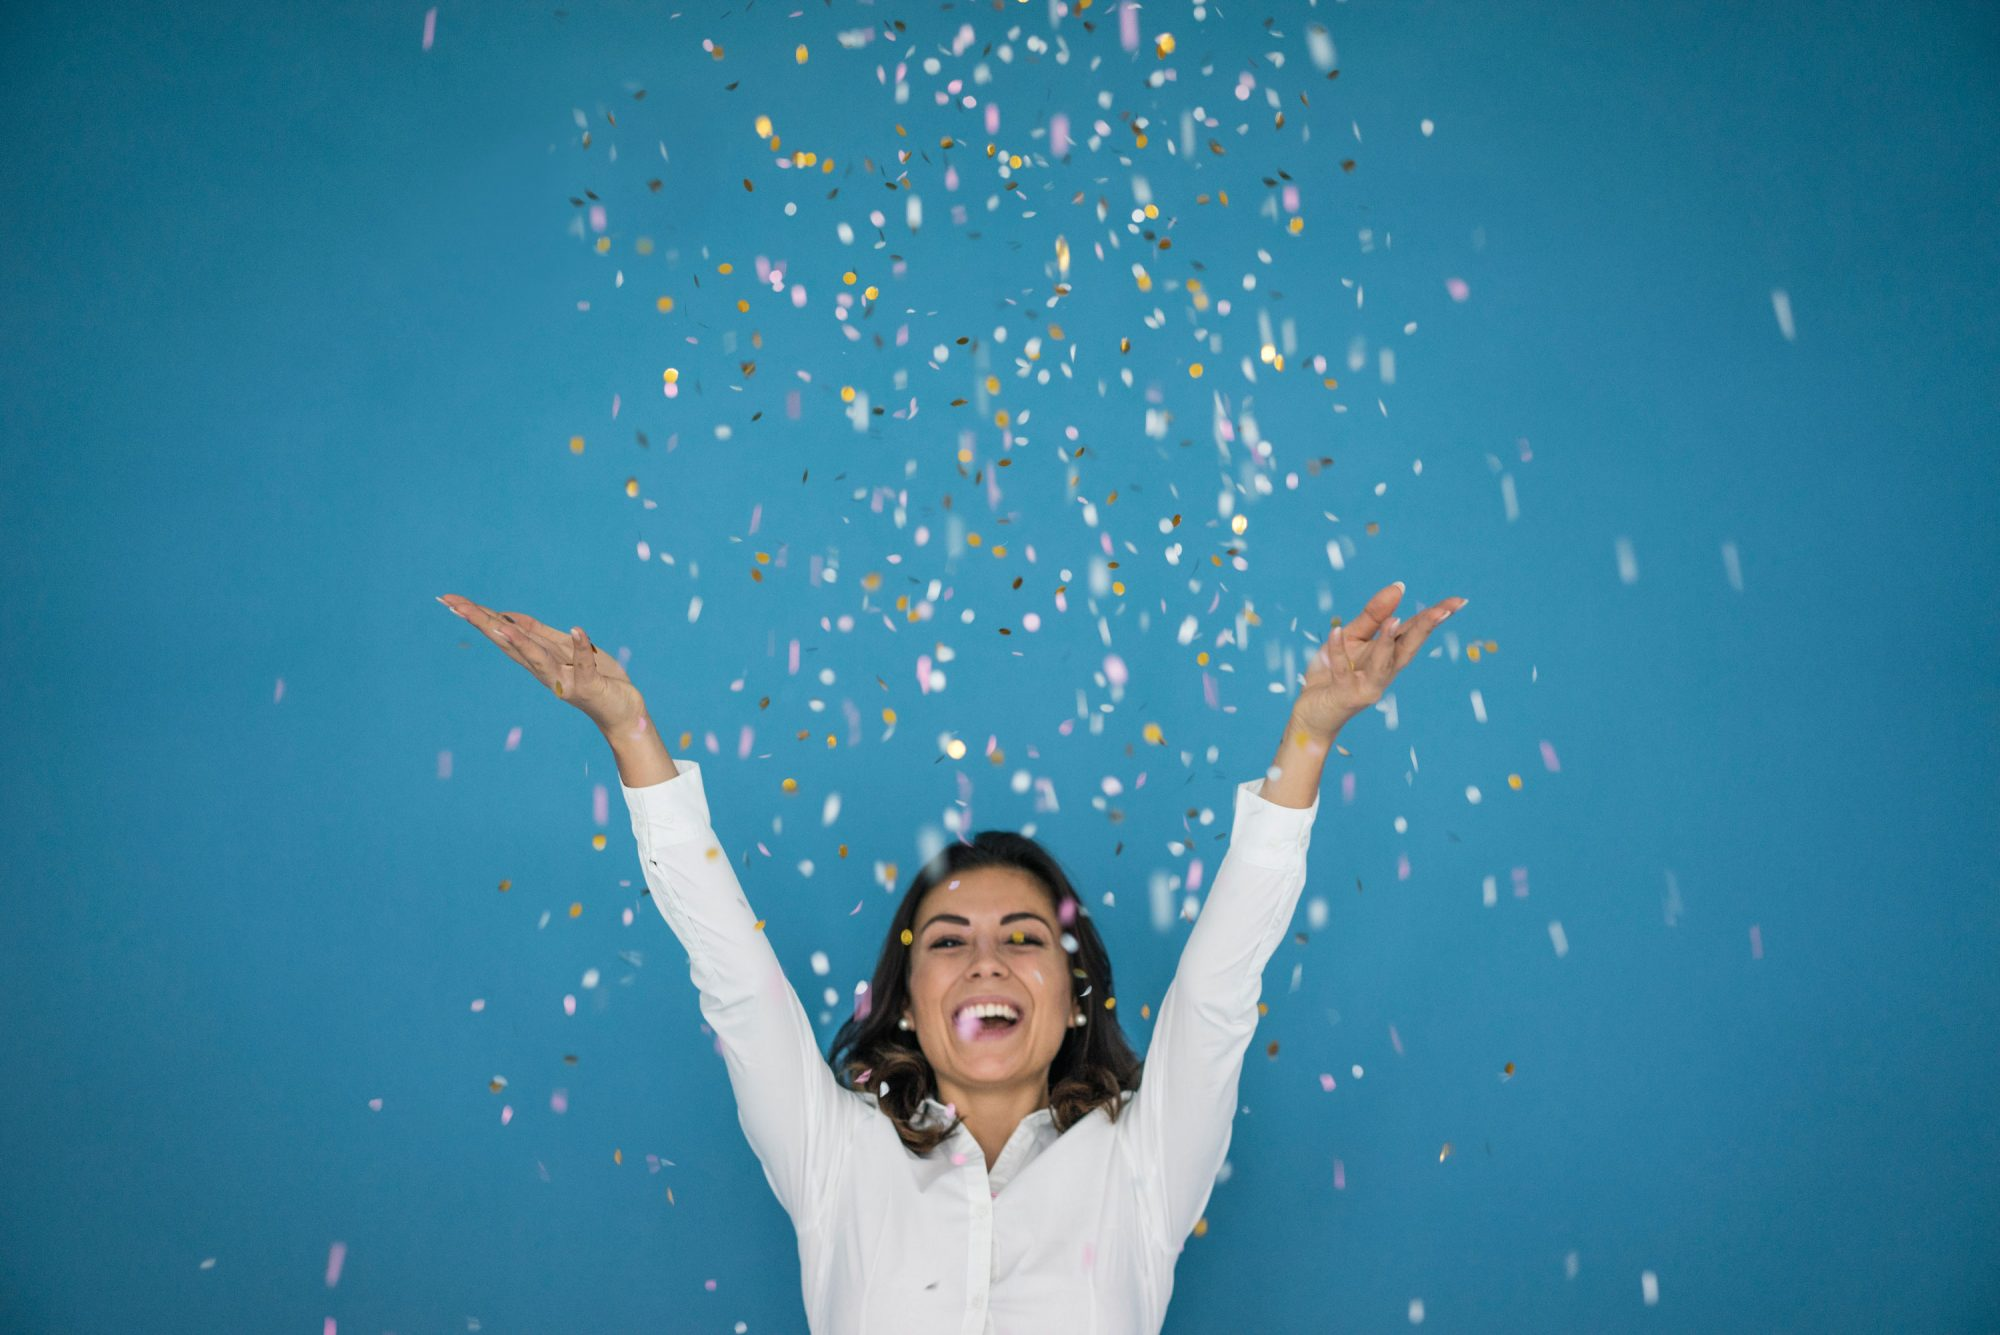 Woman Celebrating with Confetti